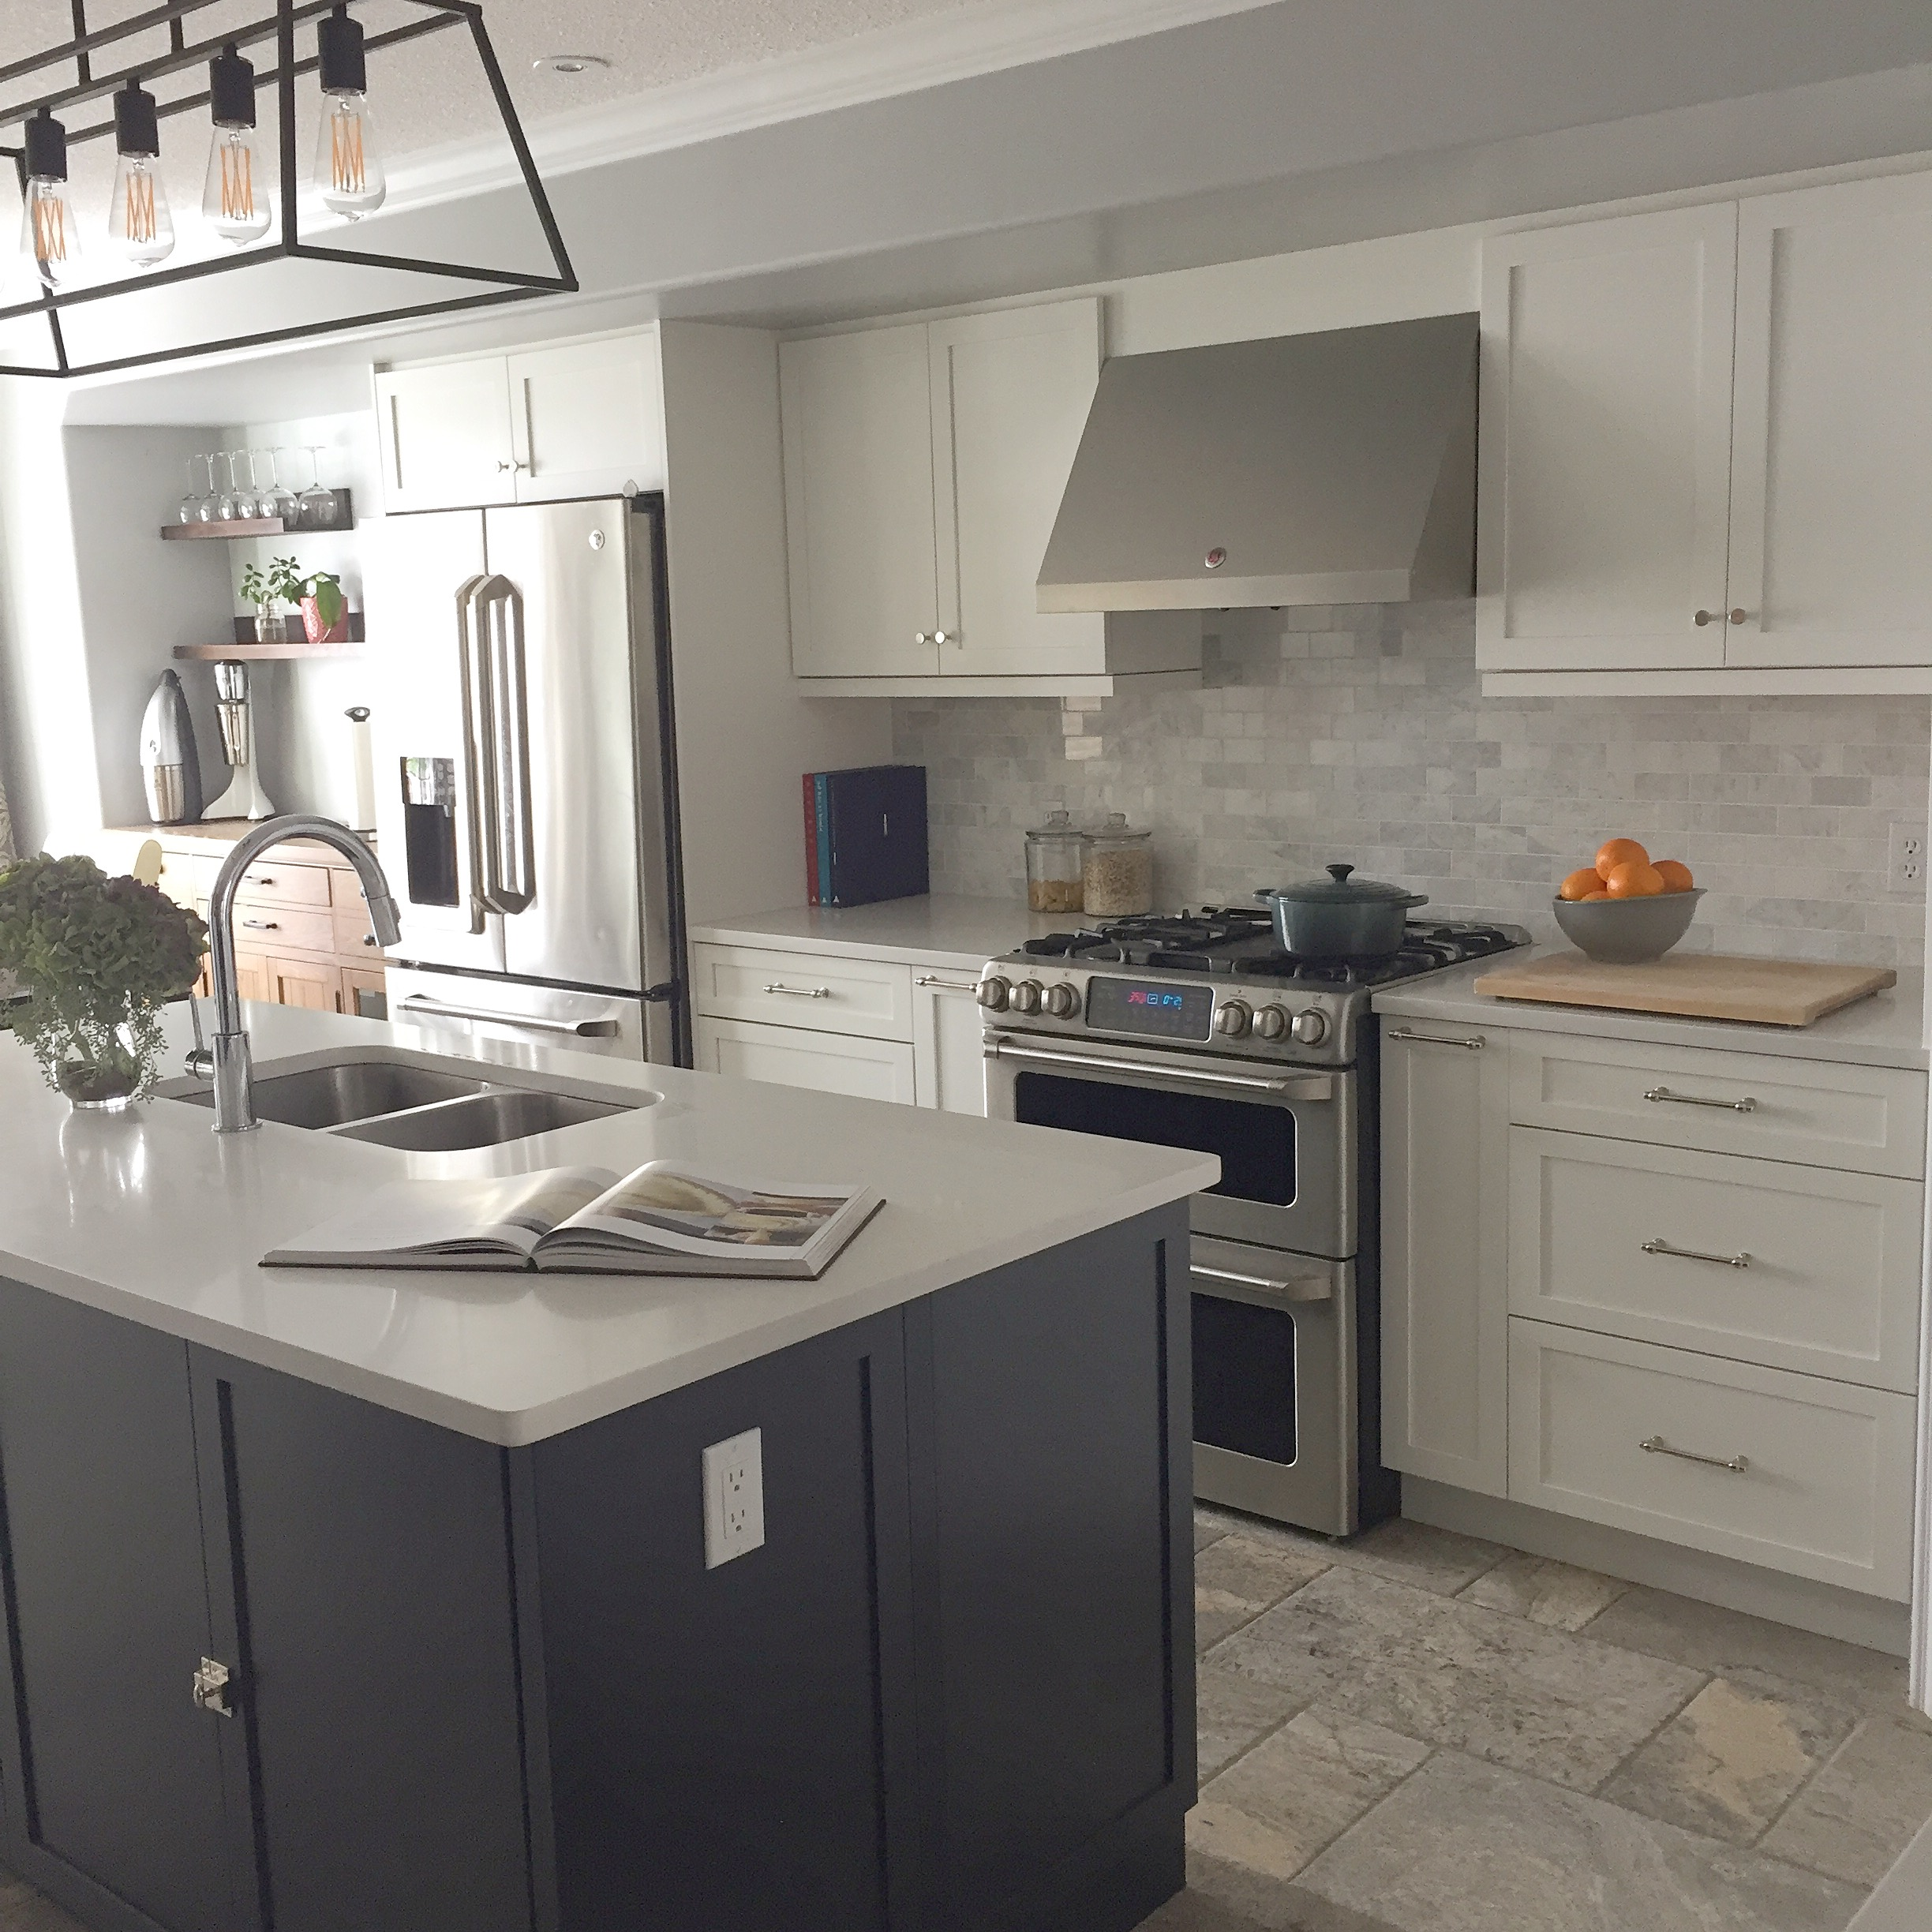 Aren't white Kitchens are the best? This two toned kitchen gets the best of both worlds.